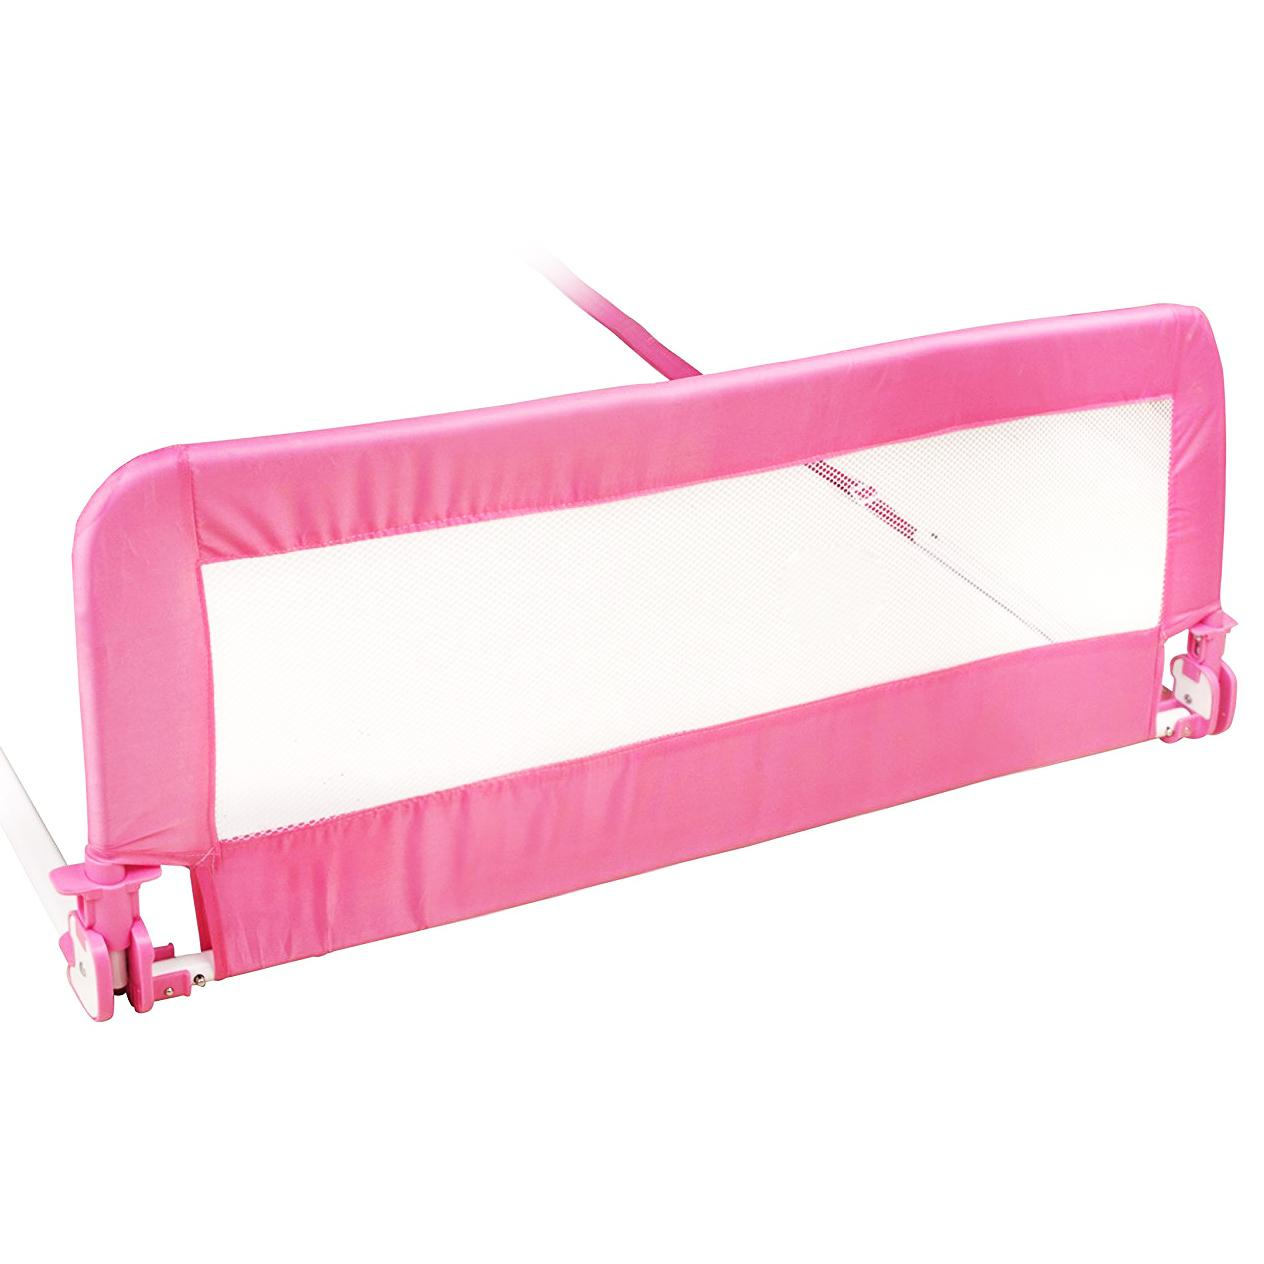 NEW 150cm Pink Baby Child Toddler Bed Rail Safety